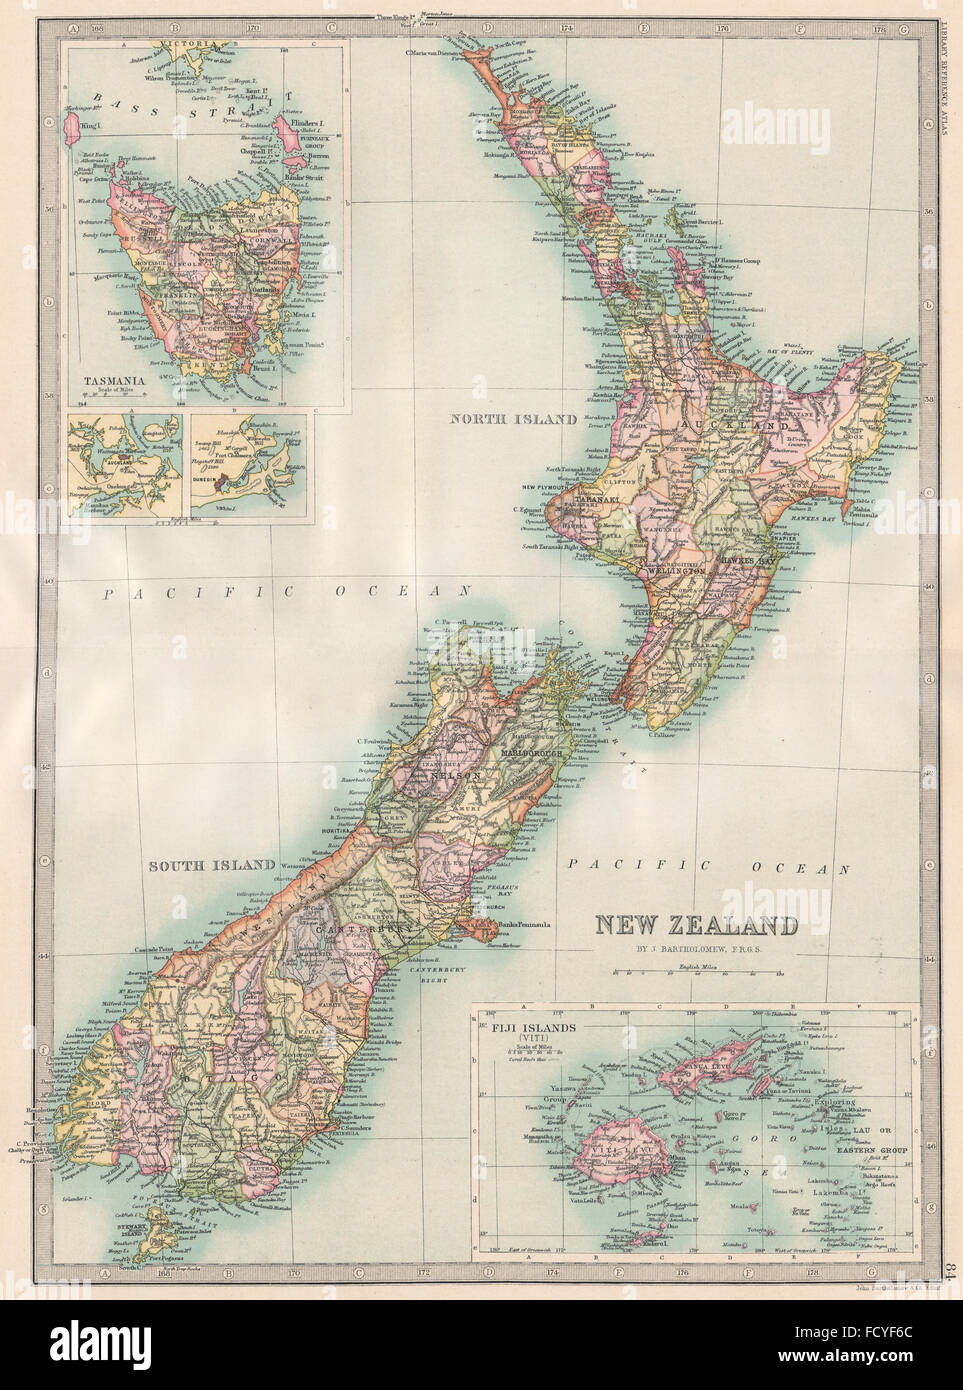 NEW ZEALAND  inset Tasmania   Fiji Islands  BARTHOLOMEW  1890     NEW ZEALAND  inset Tasmania   Fiji Islands  BARTHOLOMEW  1890 antique map